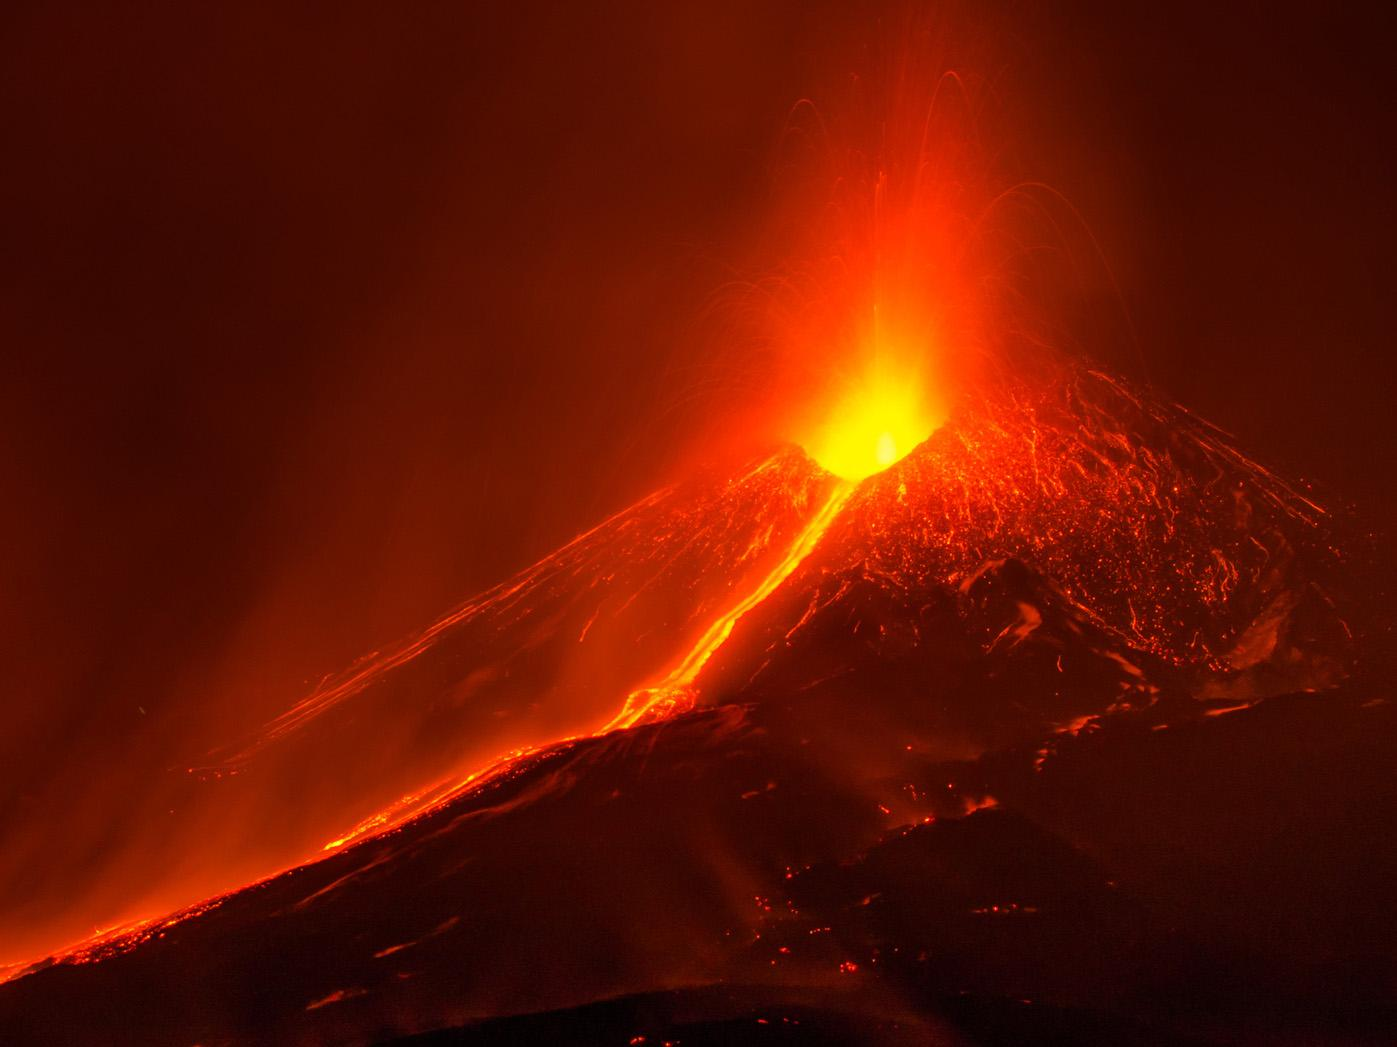 Catastrophic collapse' of Mount Etna could trigger tsunami